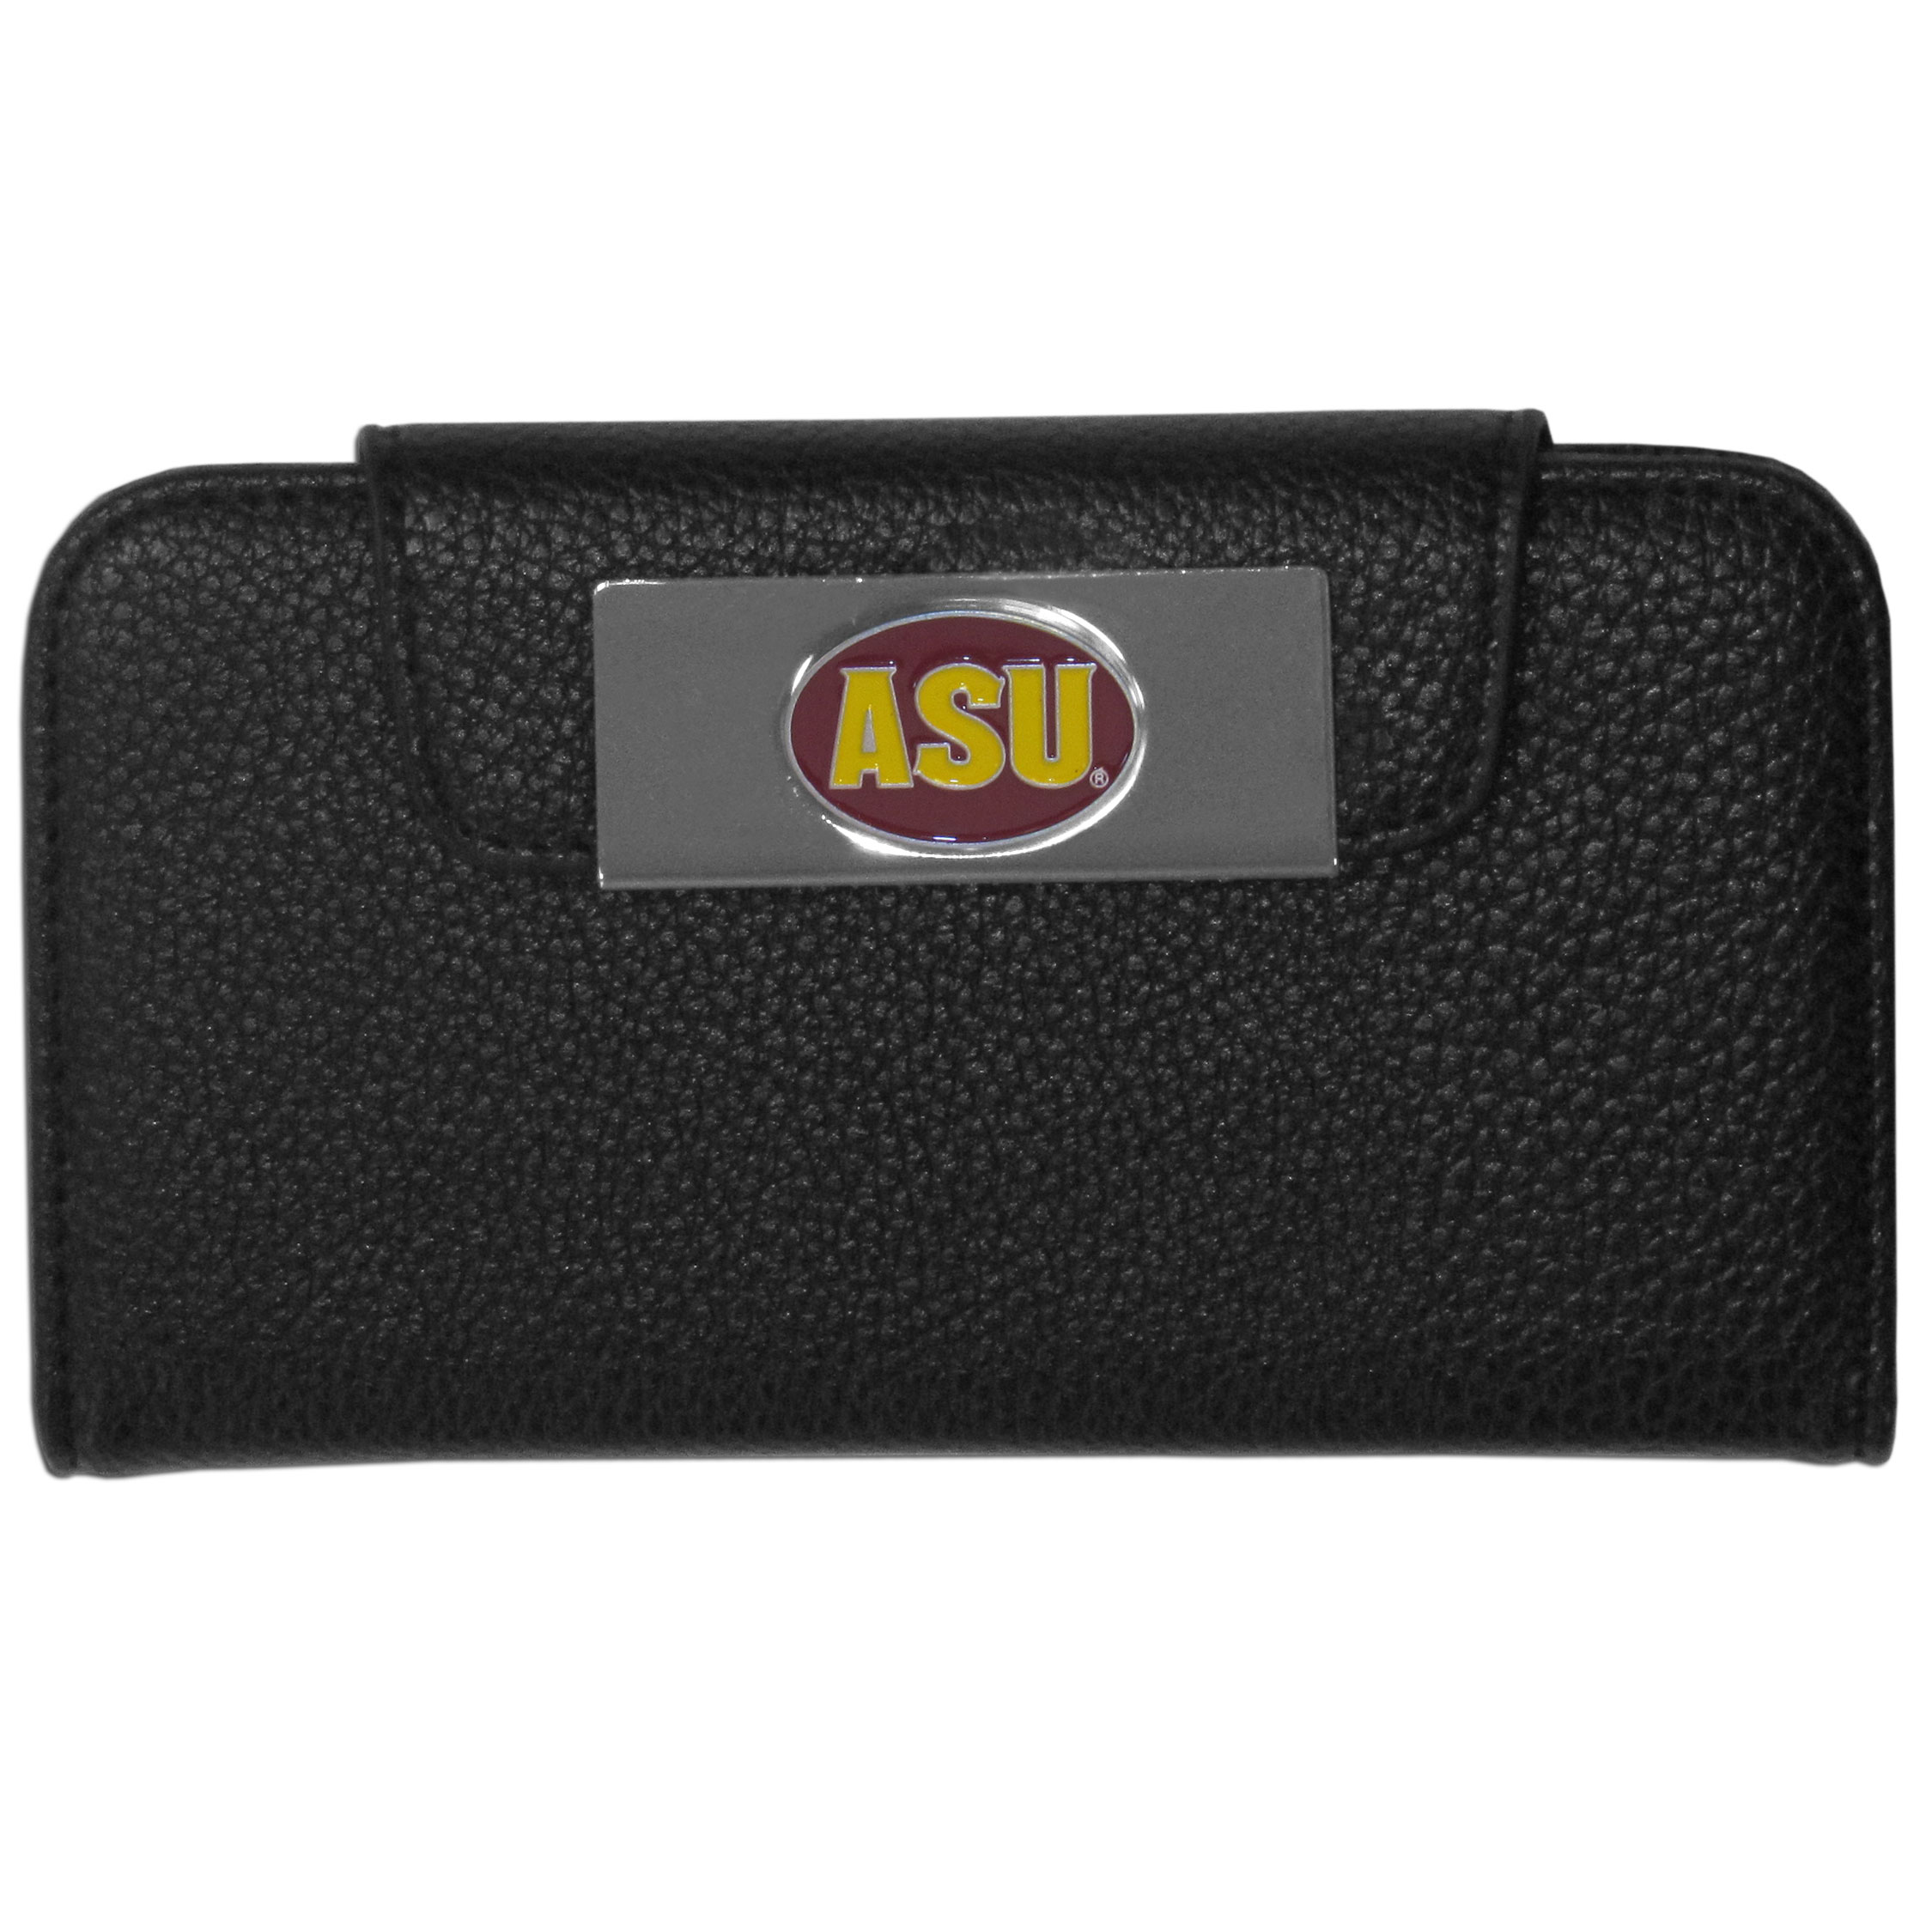 Arizona St. Sun Devils iPhone 5/5S Wallet Case - This new & wildly popular case is ideal for those who like to travel light! The stylish case has an inner hard shell that securely holds your phone while allowing complete access to the phone's functionality. The flip cover has slots for credit cards, business cards and identification. The magnetic flip cover has a metal Arizona St. Sun Devils emblem on a high polish chrome backing. Fits the iPhone 5/5S